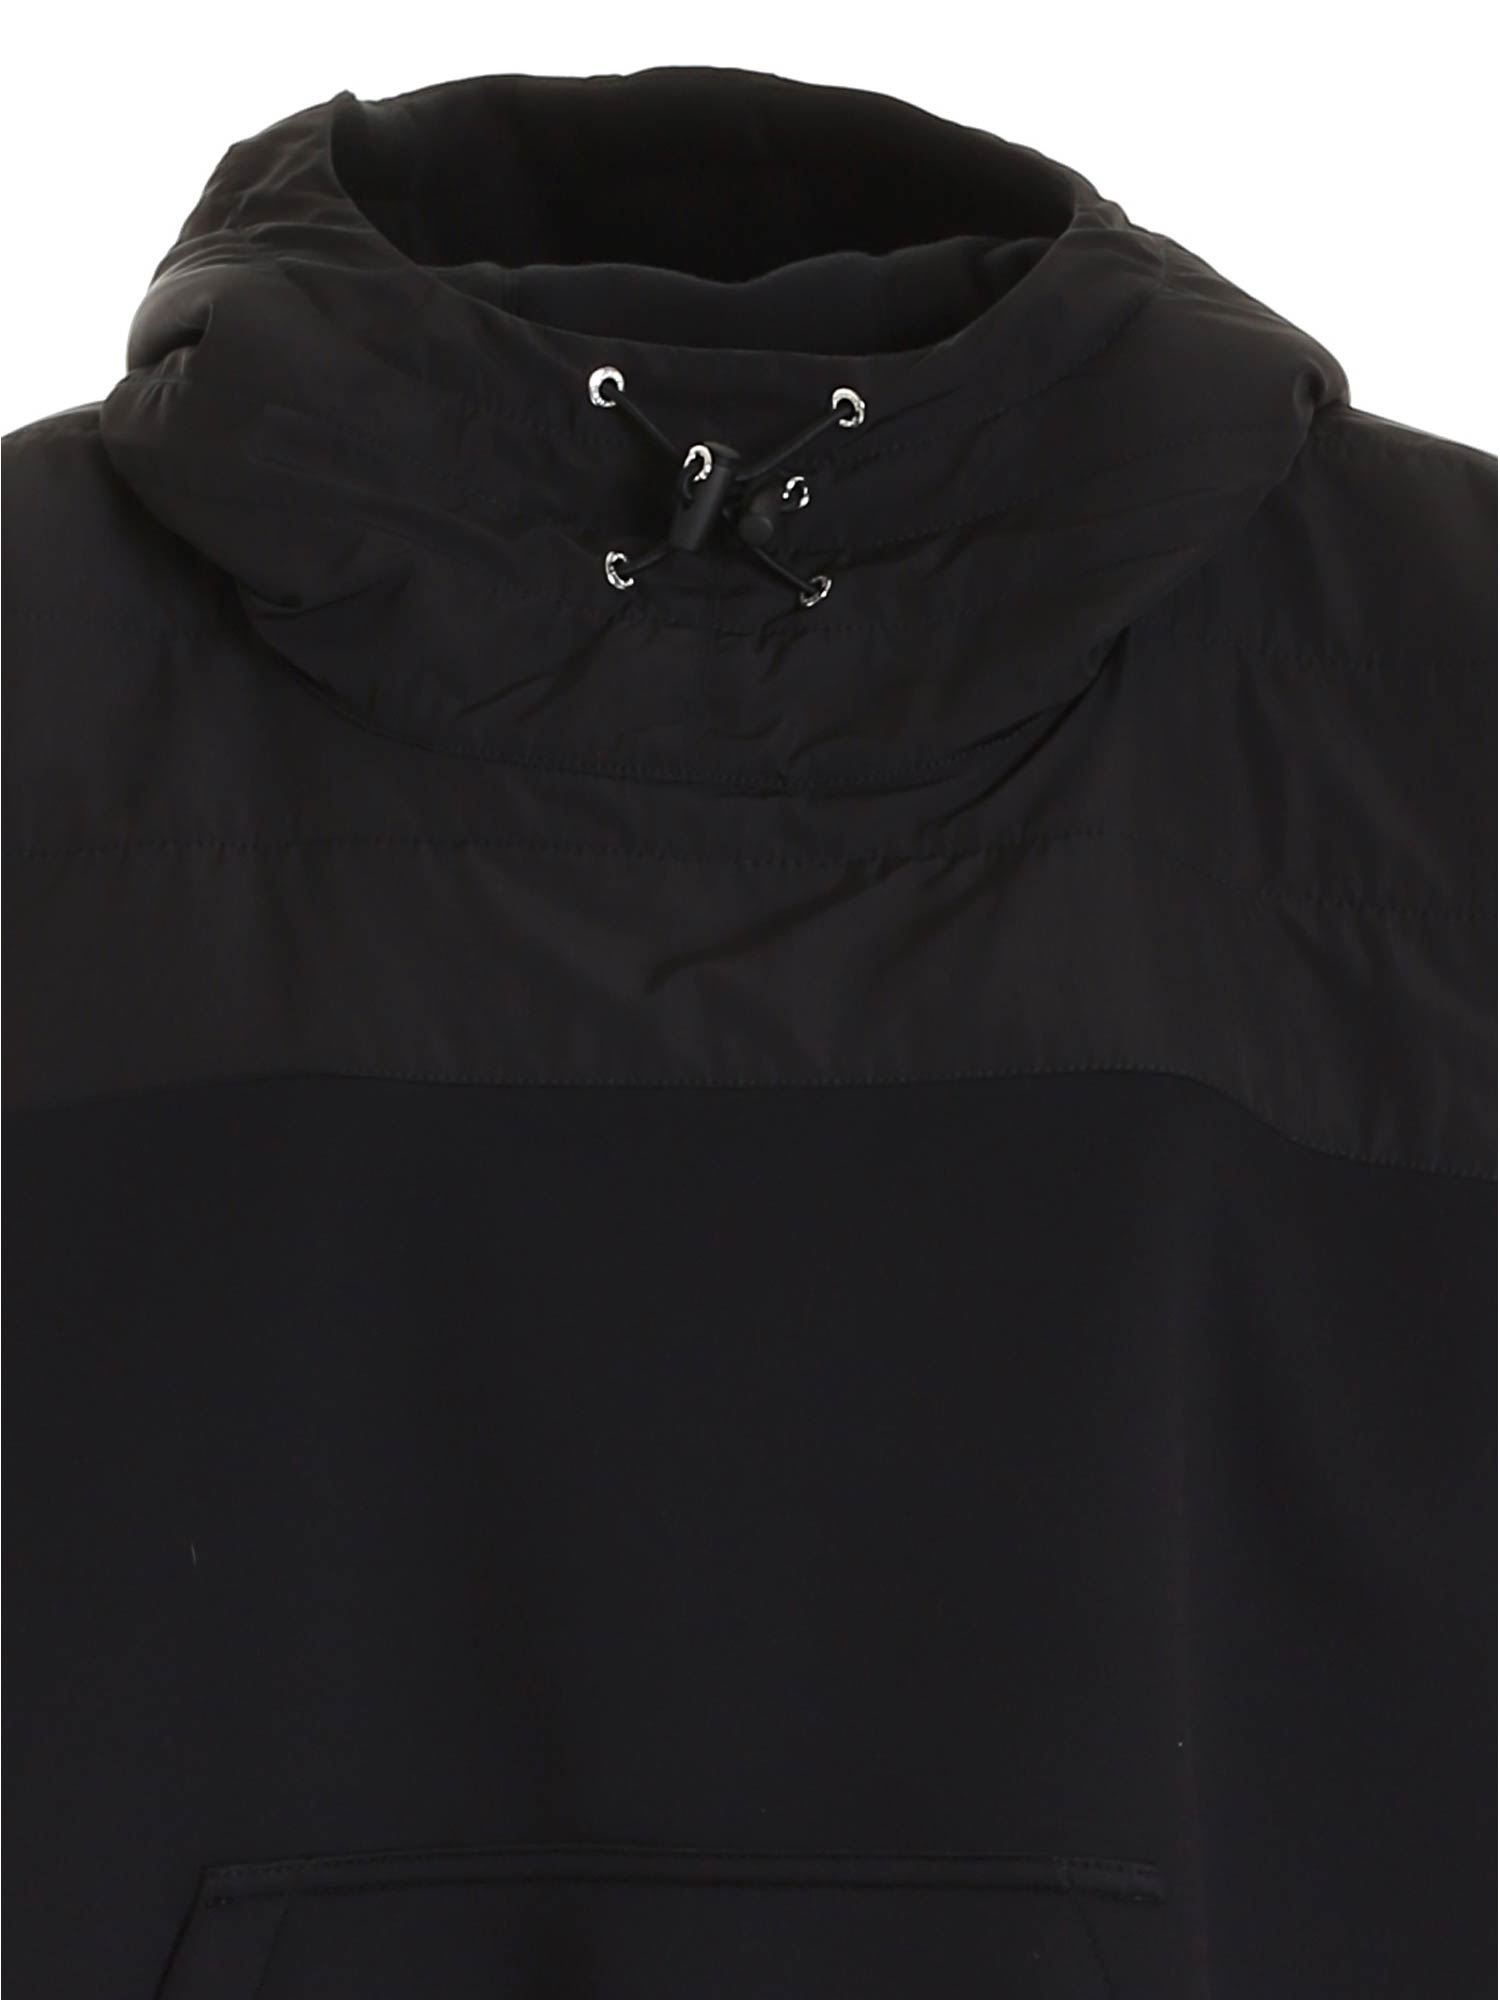 MONCLER Linings HOODED PONCHO IN BLACK